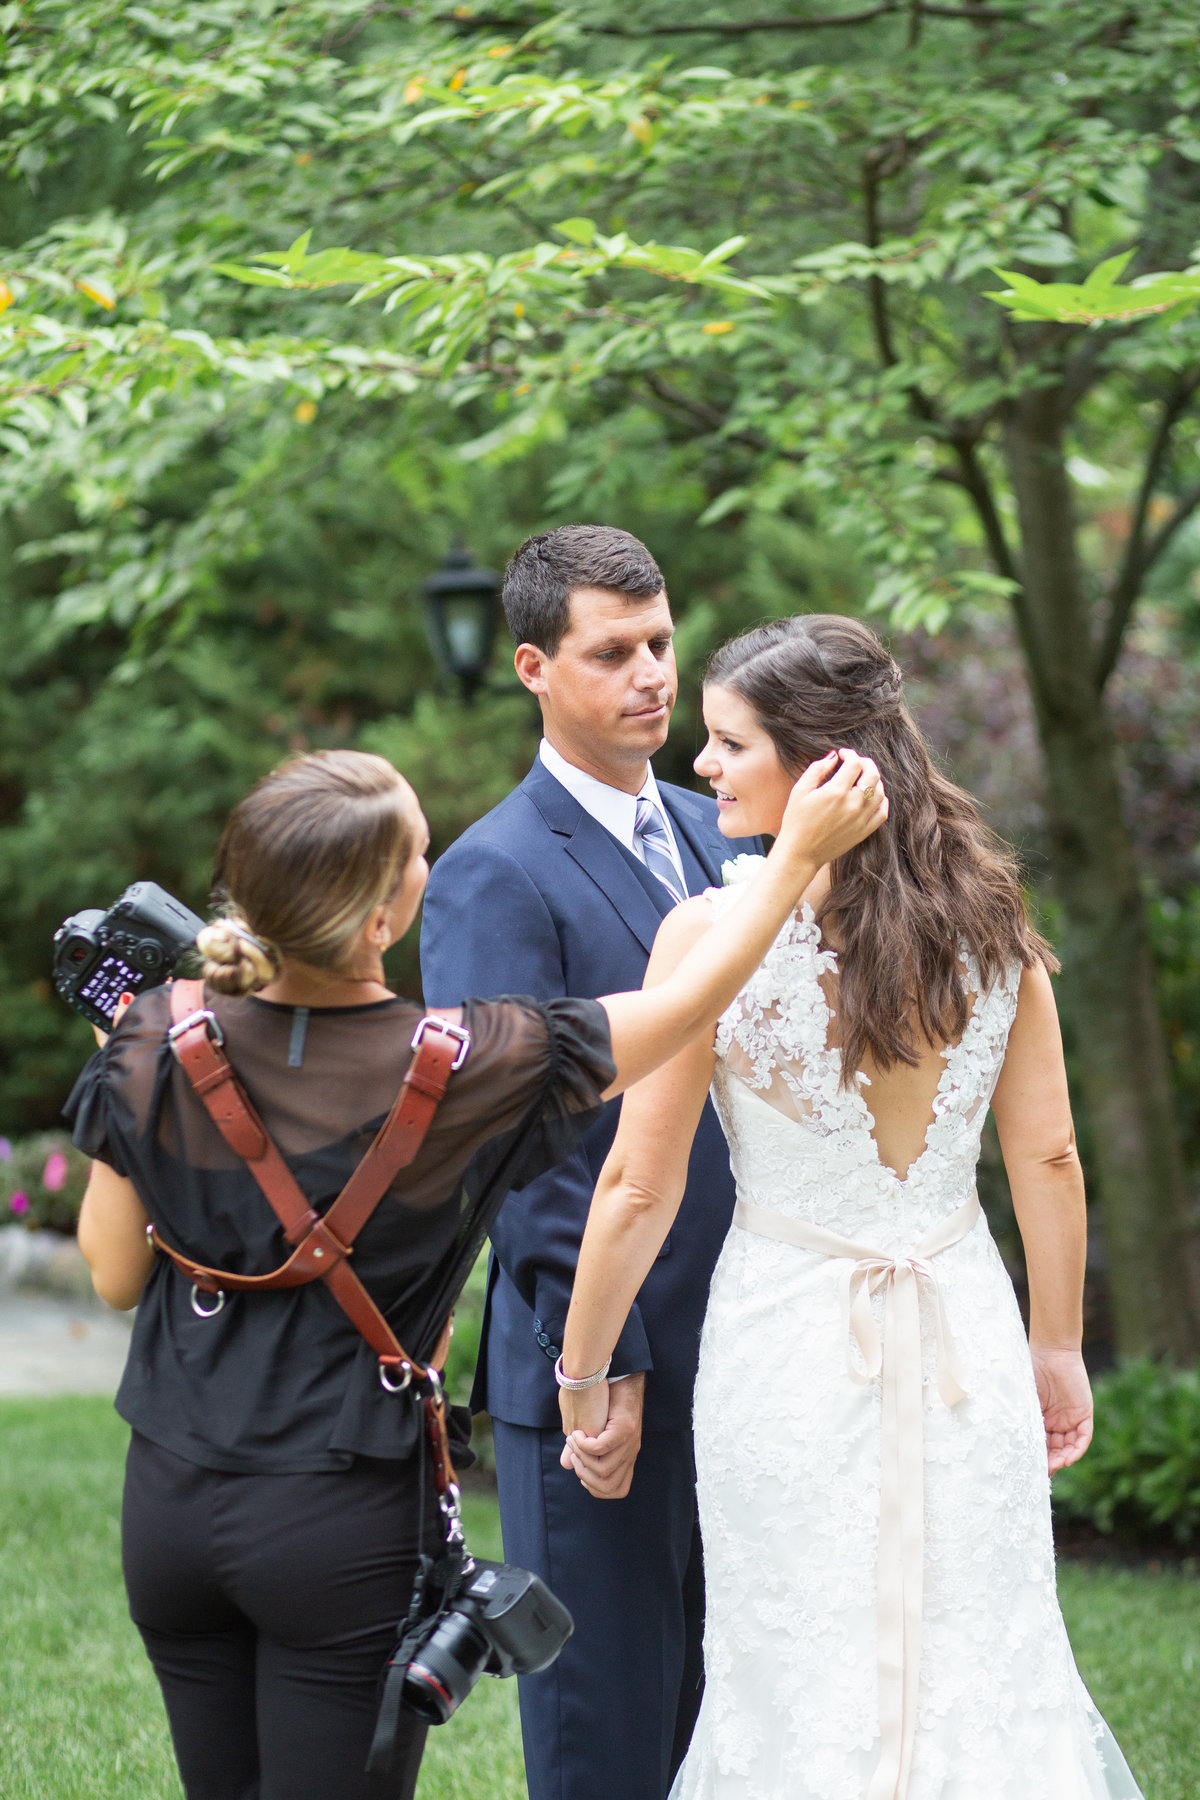 Ashley Mac Photographs - New Jersey Weddings - Behind the Scenes of a Wedding - BTS-52